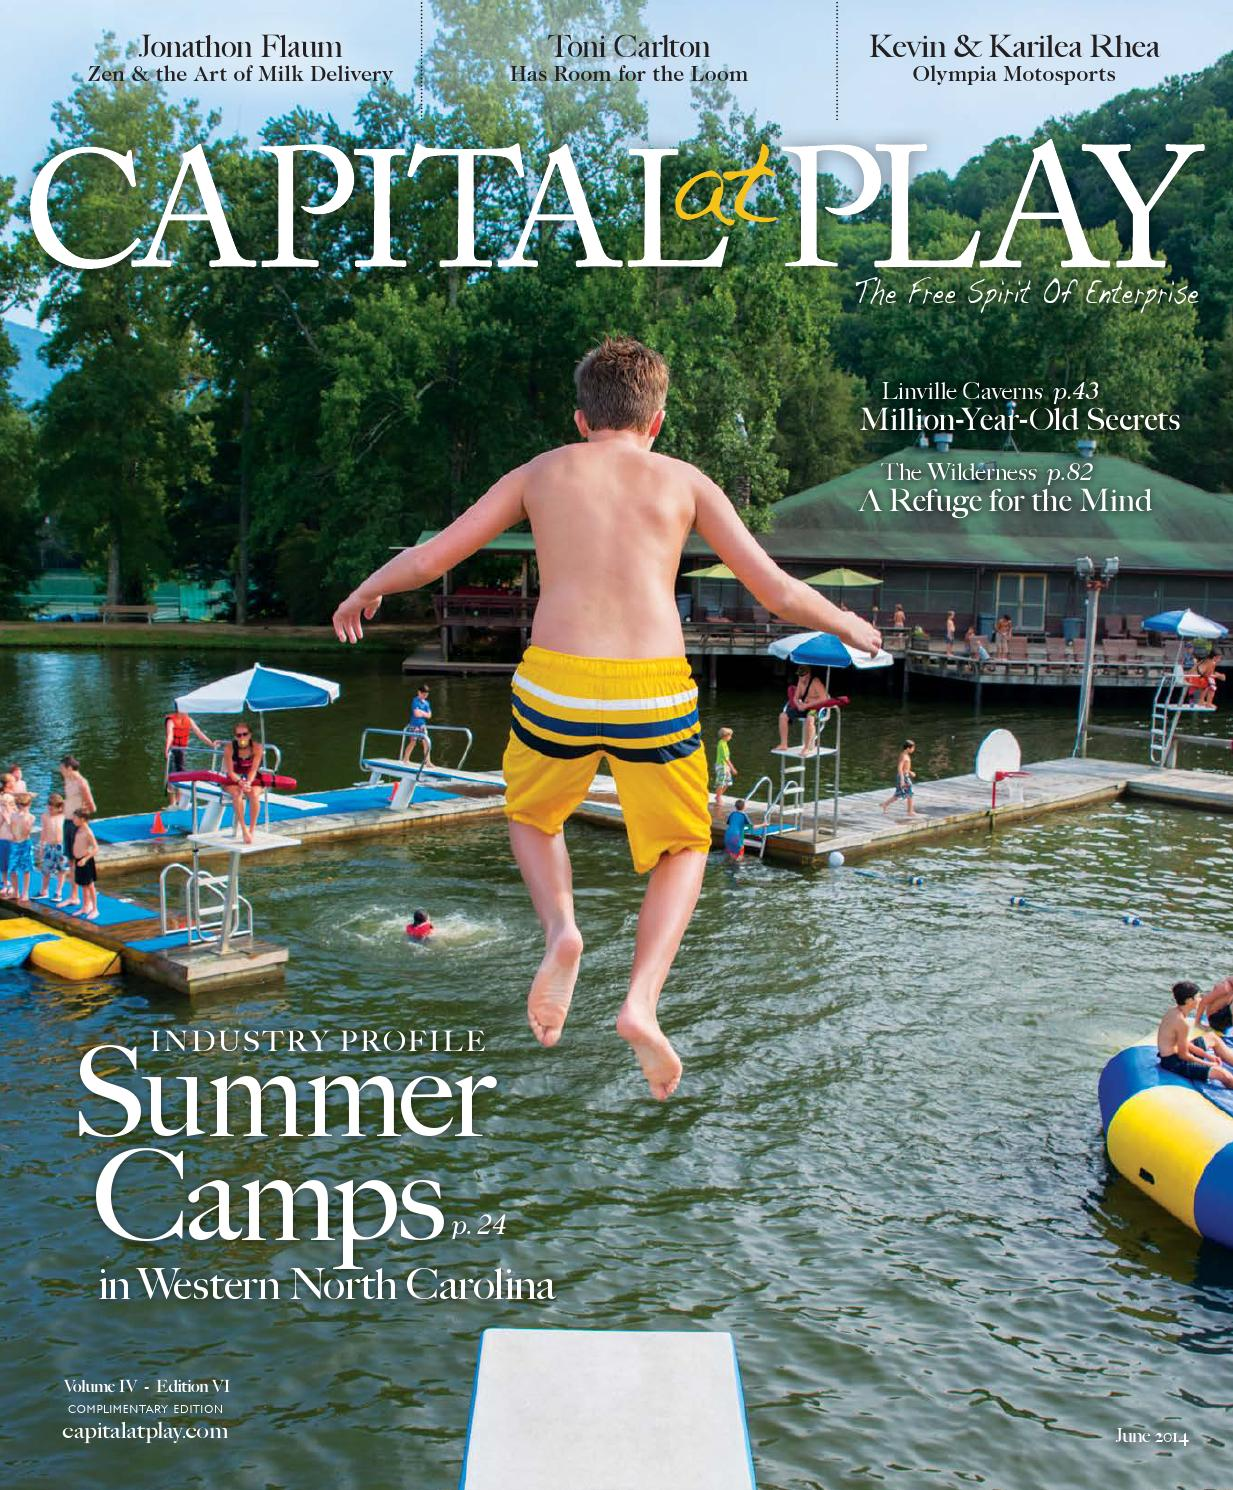 Capital at Play June 2014 by Capital at Play Magazine - issuu